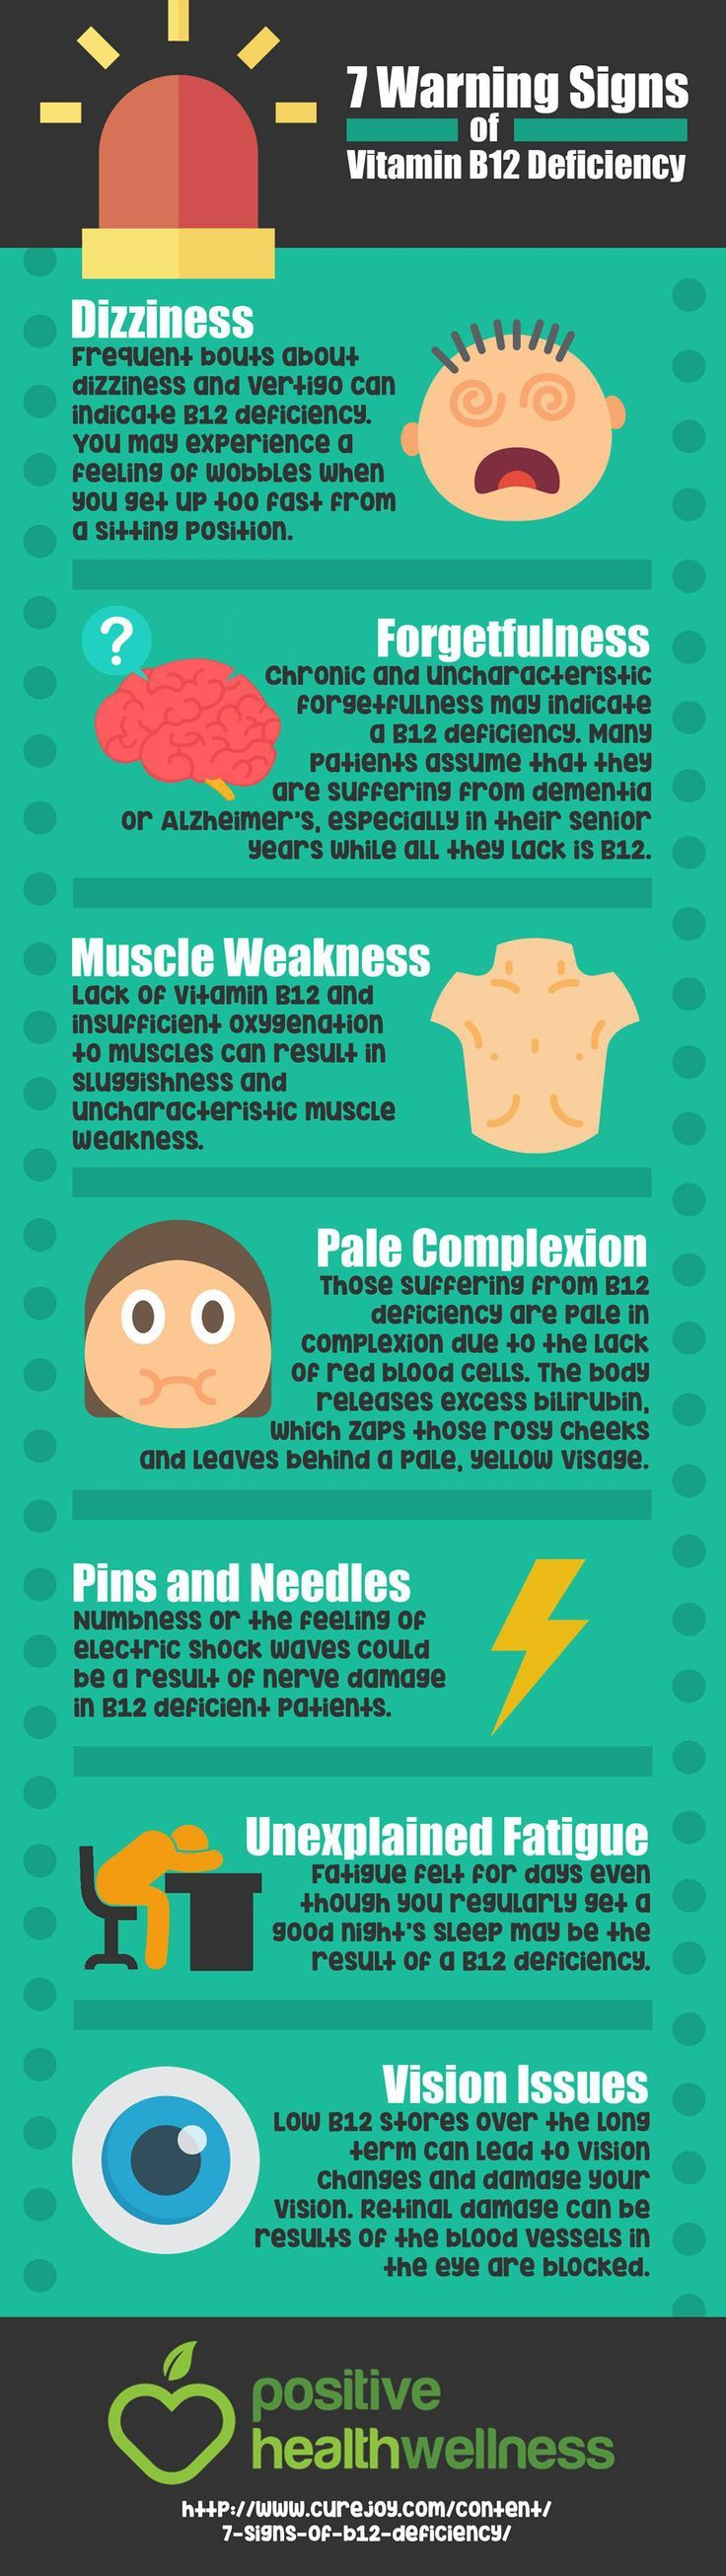 7 Warning Signs of Vitamin B12 Deficiency – Positive Health Wellness Infographic